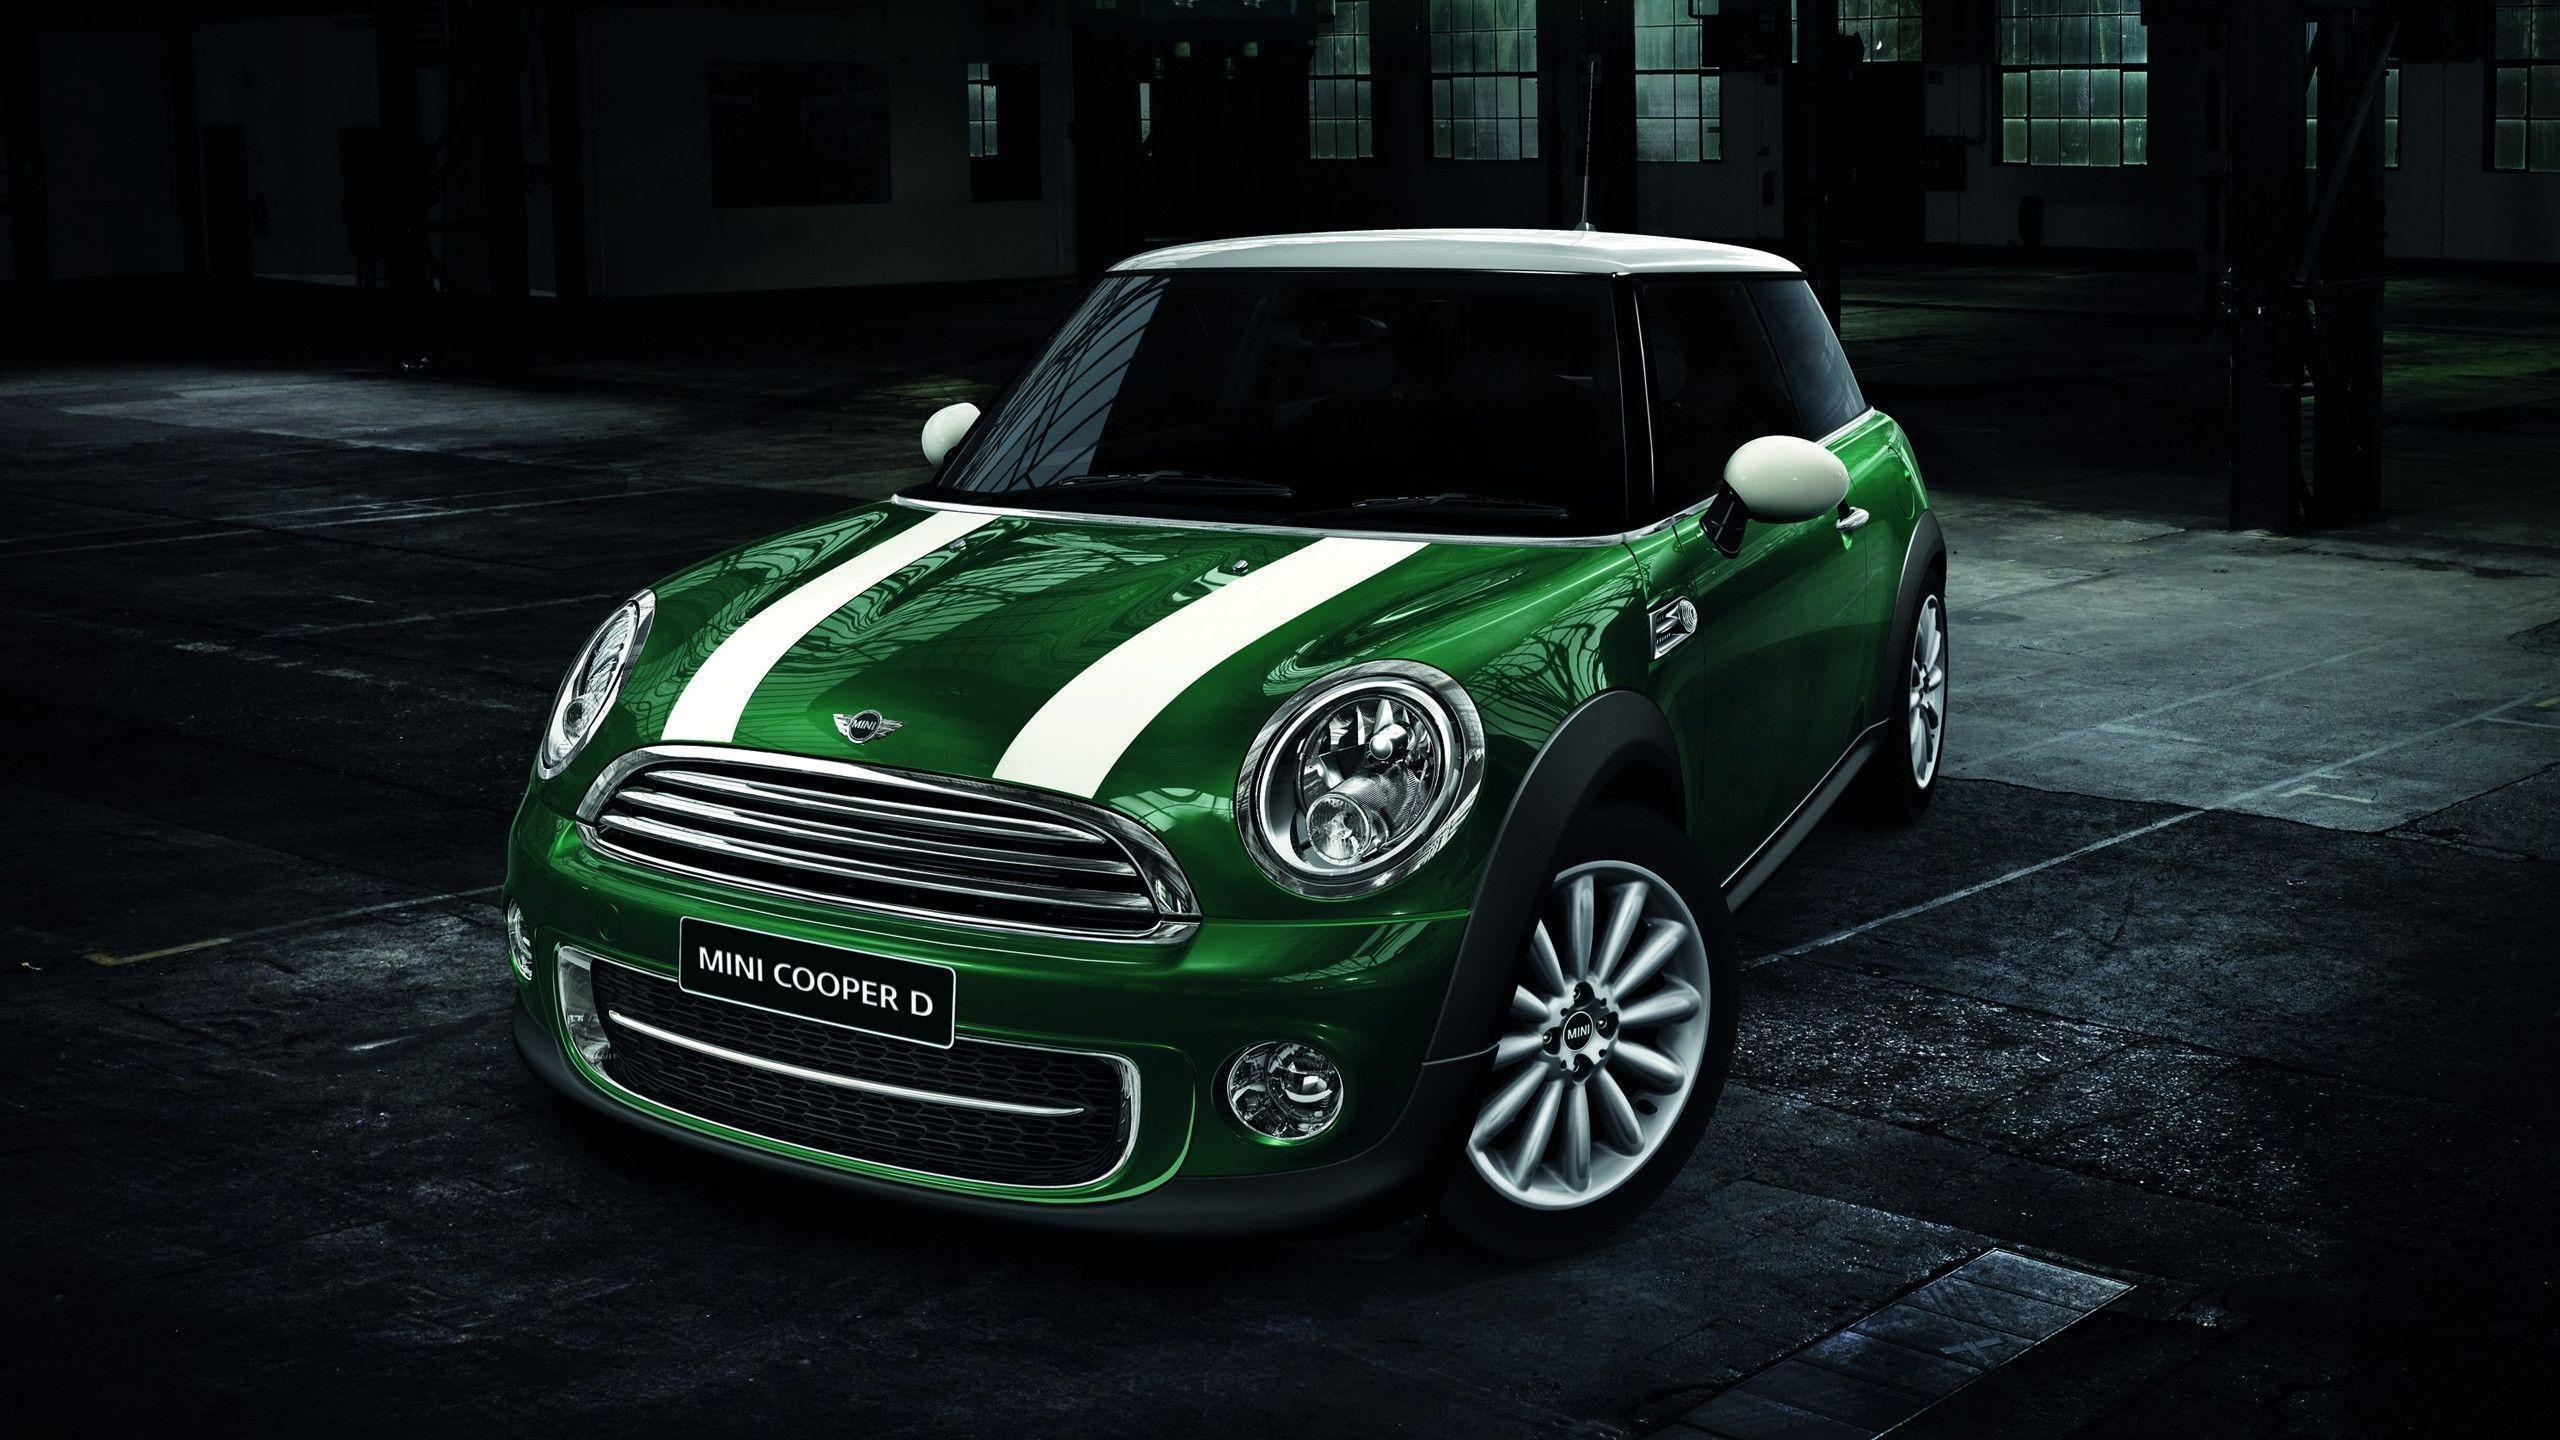 Download Mini Cooper Wallpaper Gallery 2560x1440